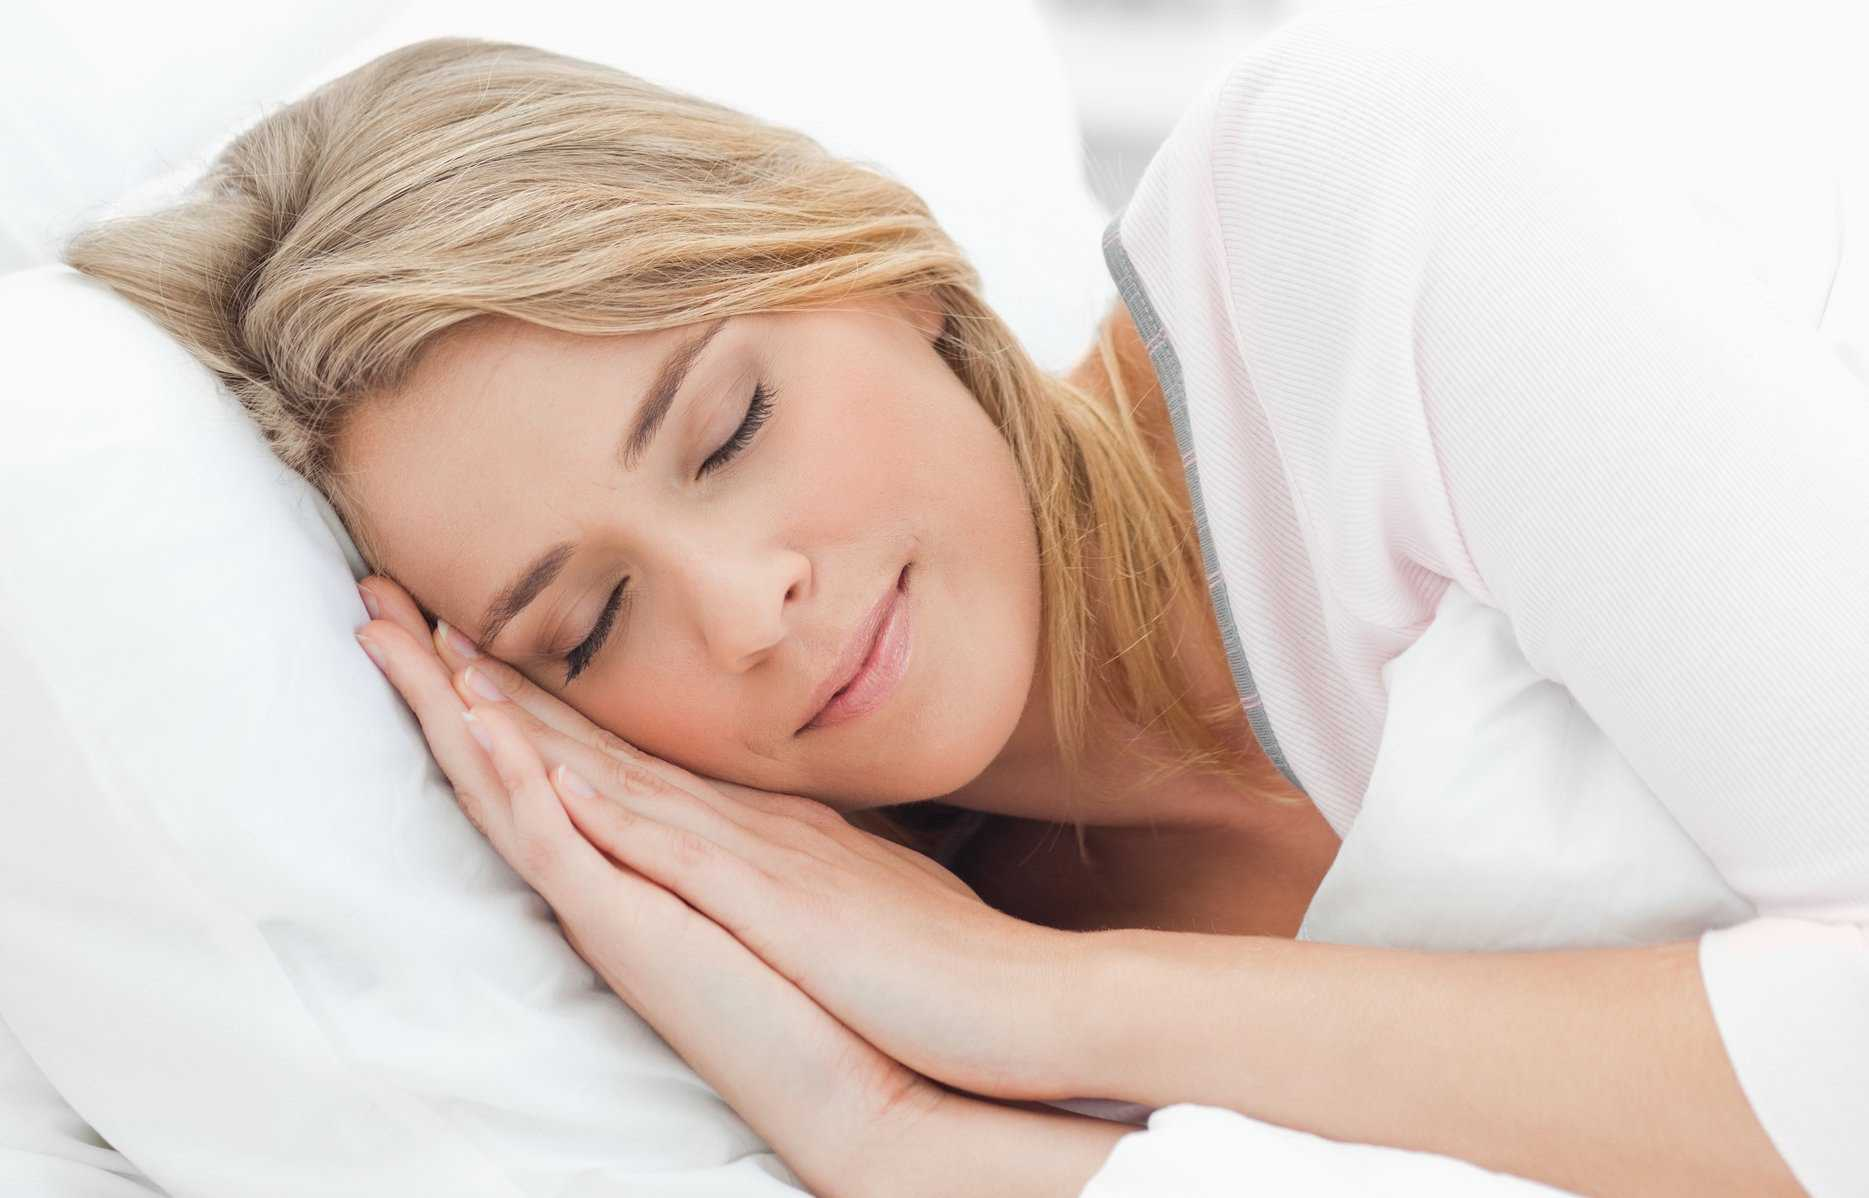 Sleep And Skincare Important For Beauty